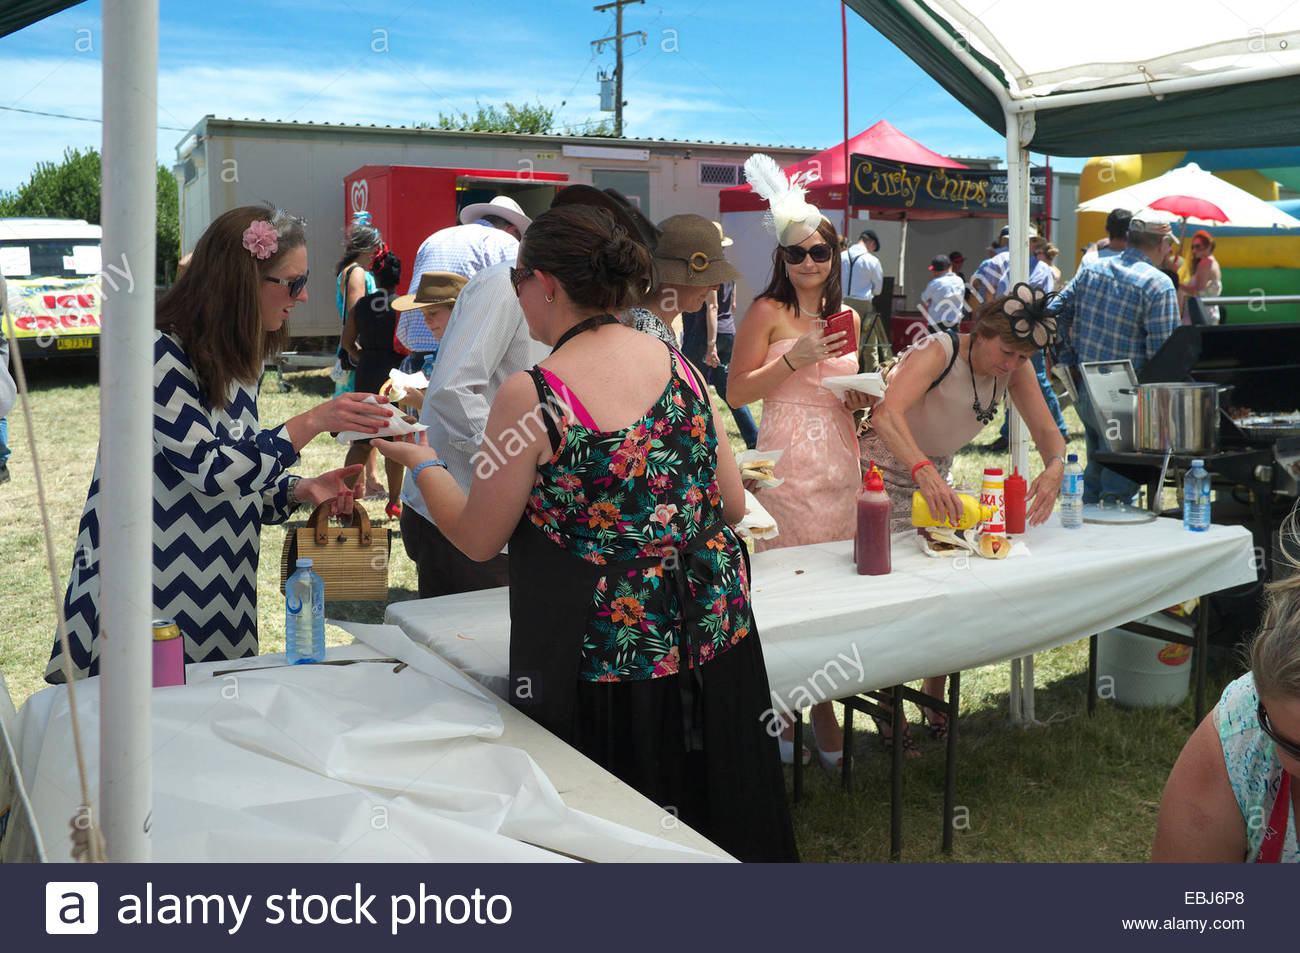 Hot dog & burger stall at the Adaminaby Races (horse racing), Snowy Mountains, NSW, Australia. - Stock Image